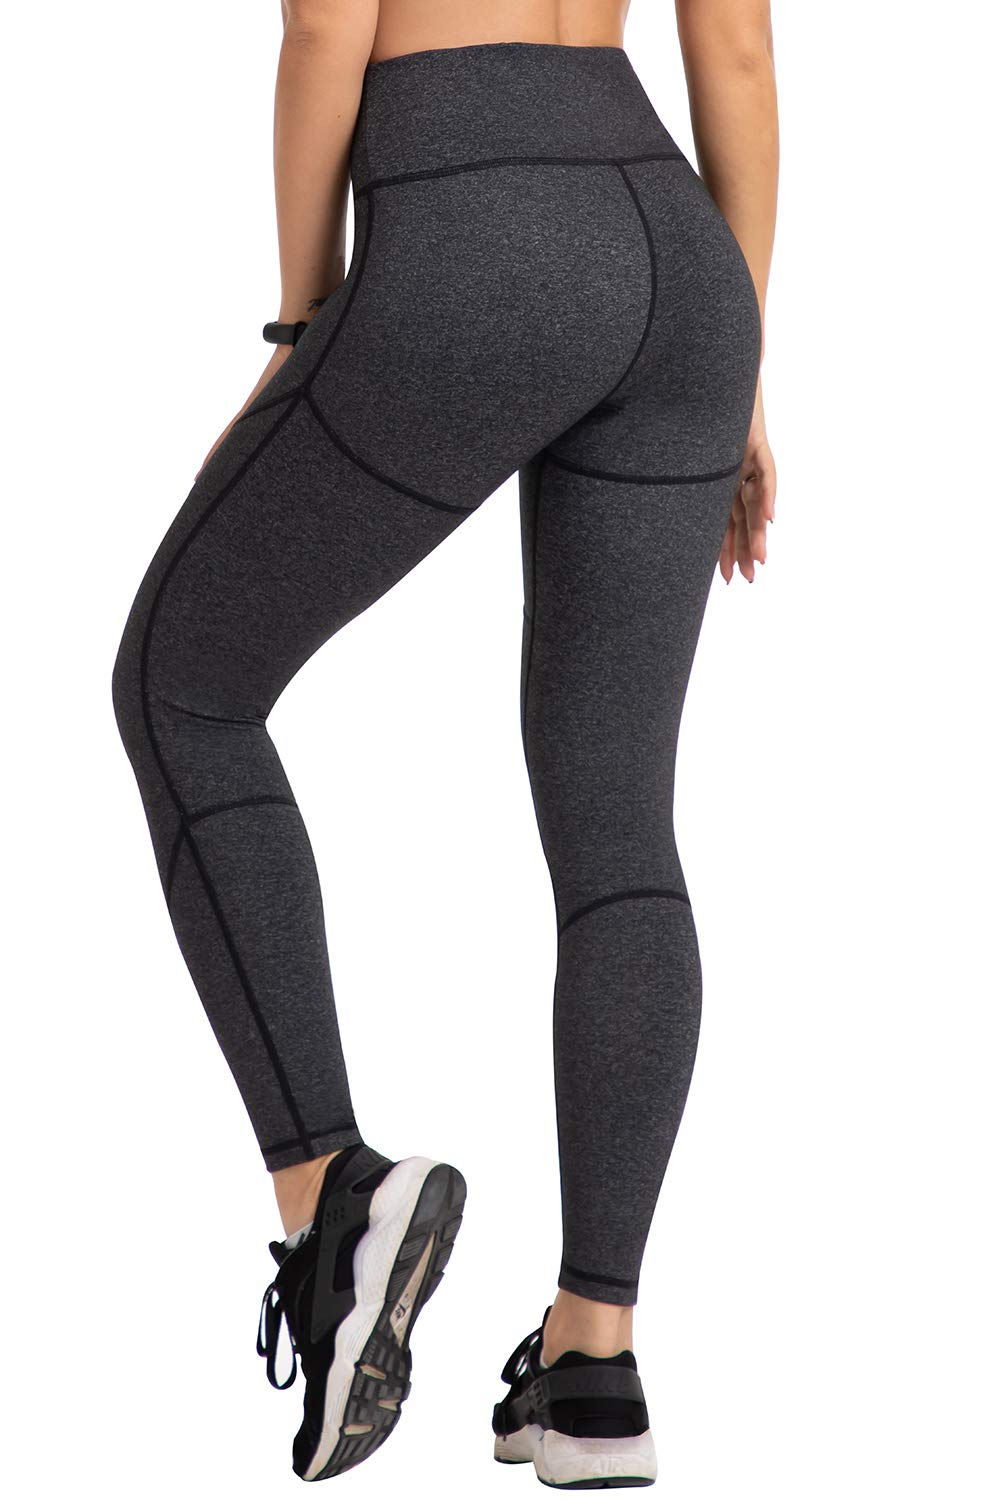 UURUN Women's High Waist Yoga Pants Non See-Through Tummy Control Workout Compression Leggings with 4 Way Stretch Grey-M by UURUN